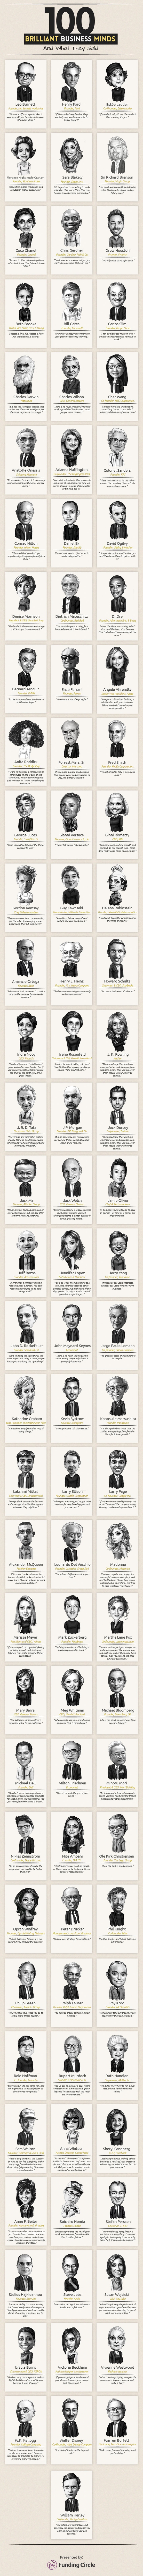 100 Inspirational Quotes From Successful Business Leaders